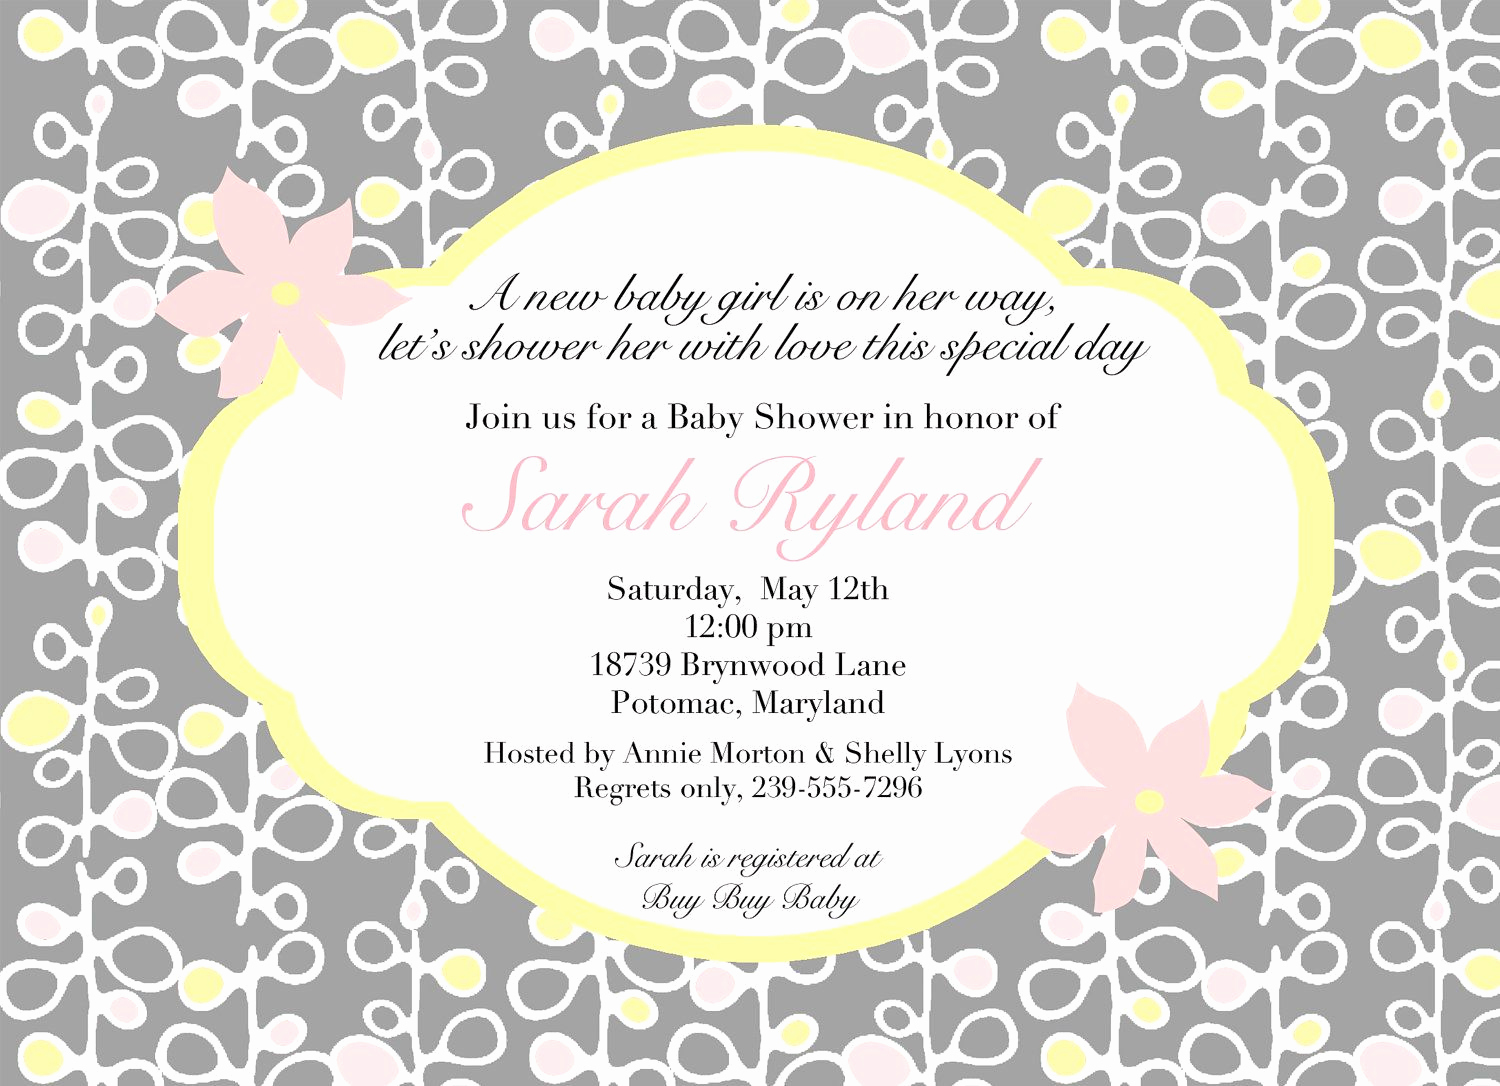 Baby Shower Invitation Ideas Unique Download Free Template Baby Shower Invitation Wordings